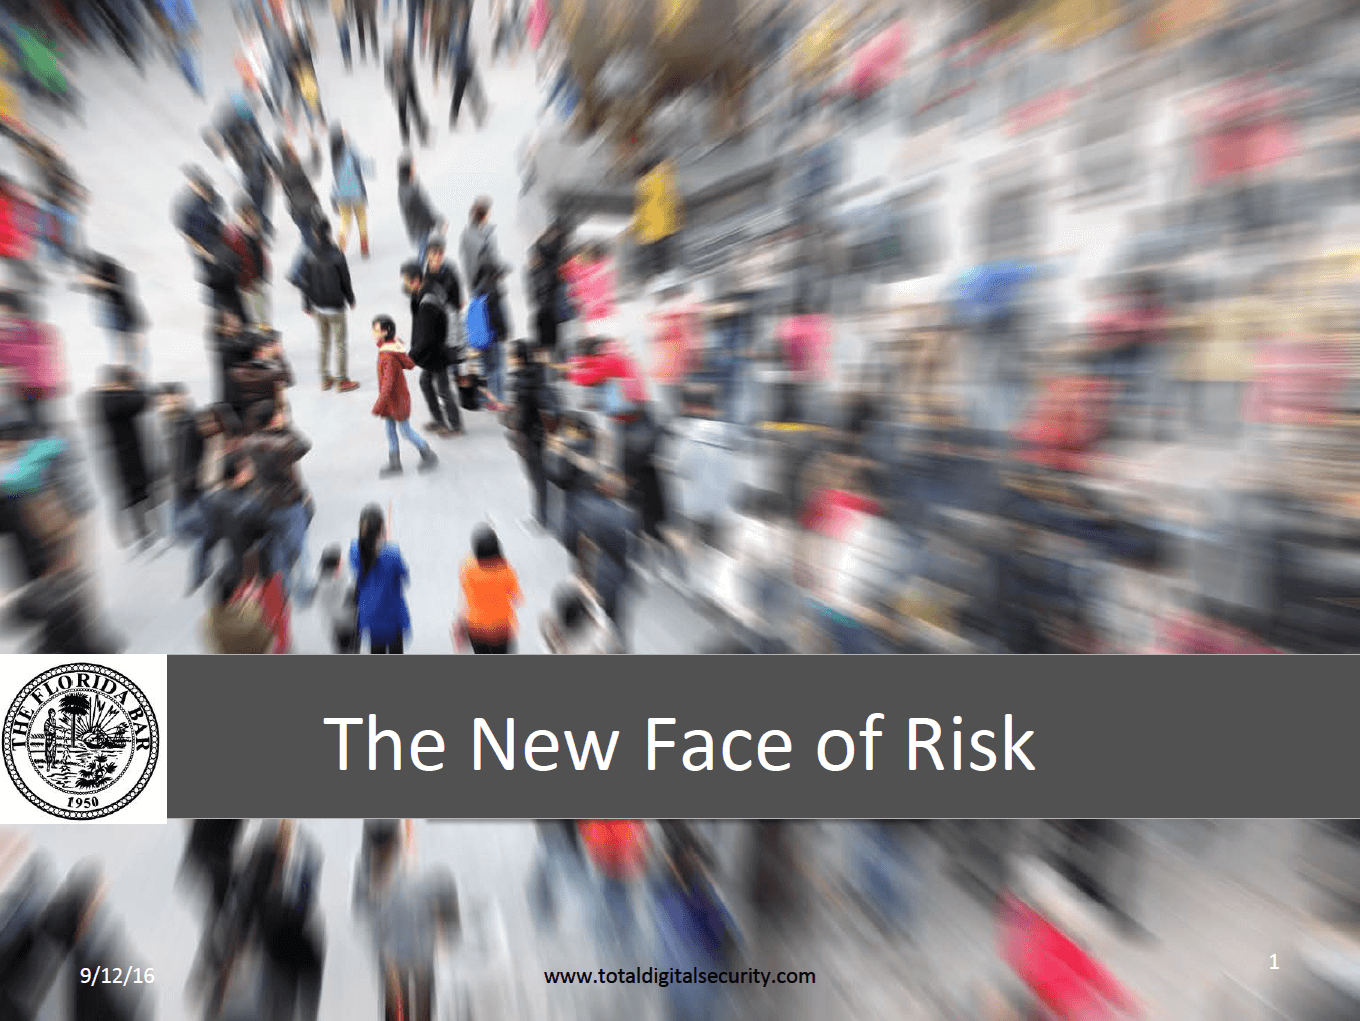 FL Bar New Face of Risk.png